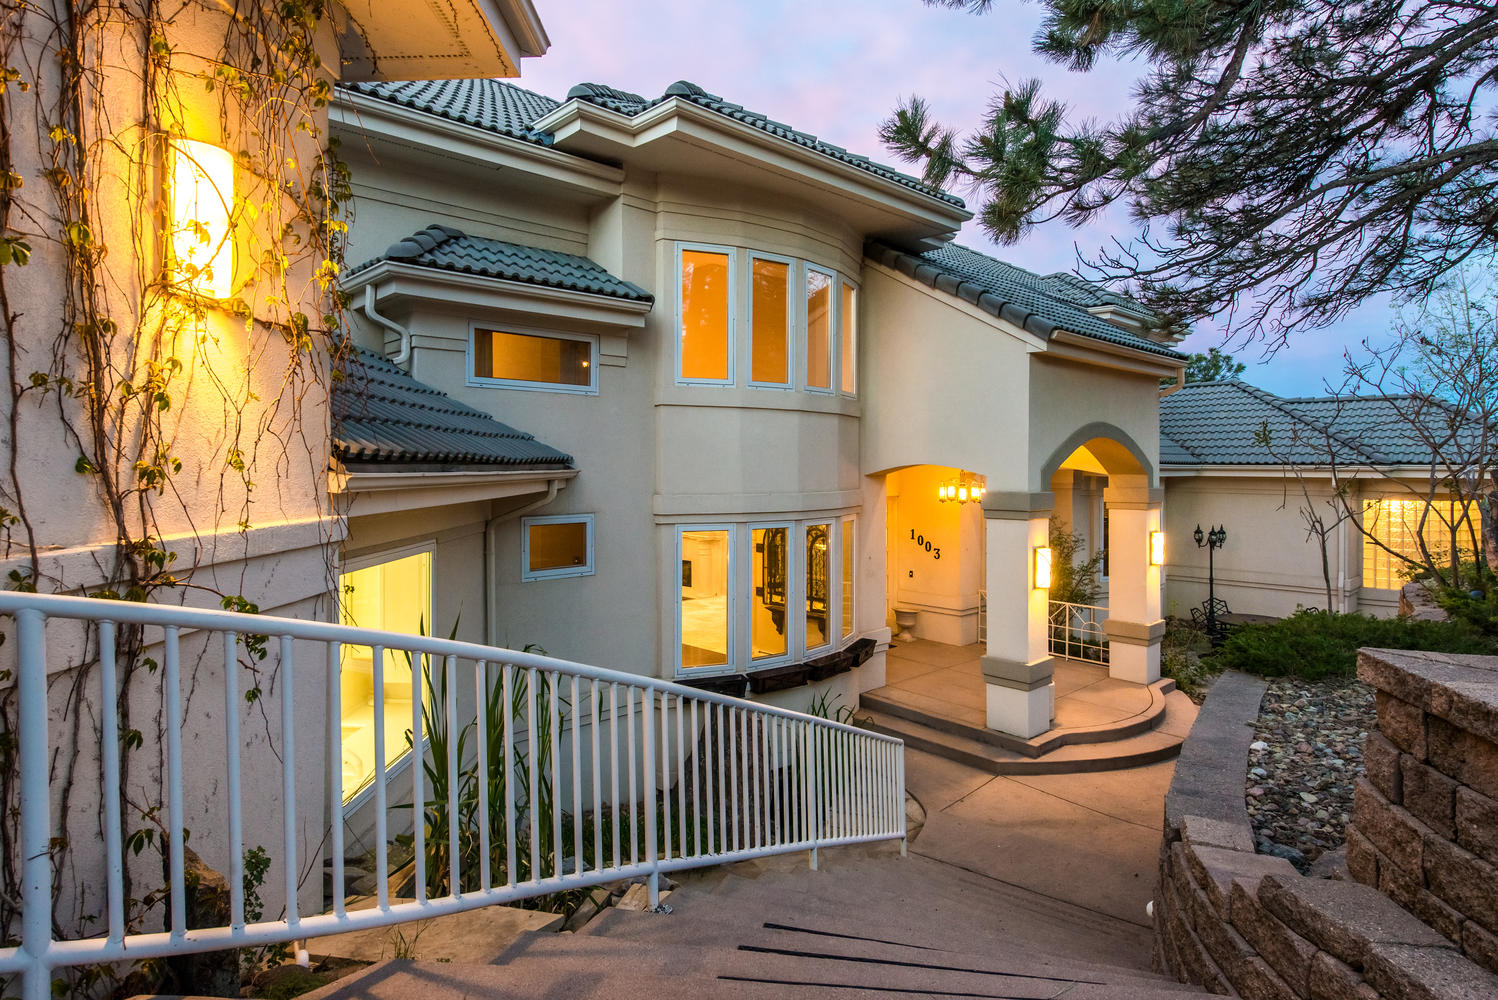 獨棟家庭住宅 為 出售 在 Spectacular Estate with Complete Privacy & Panoramic Views 1003 Star Ridge Road Golden, 科羅拉多州, 80401 美國